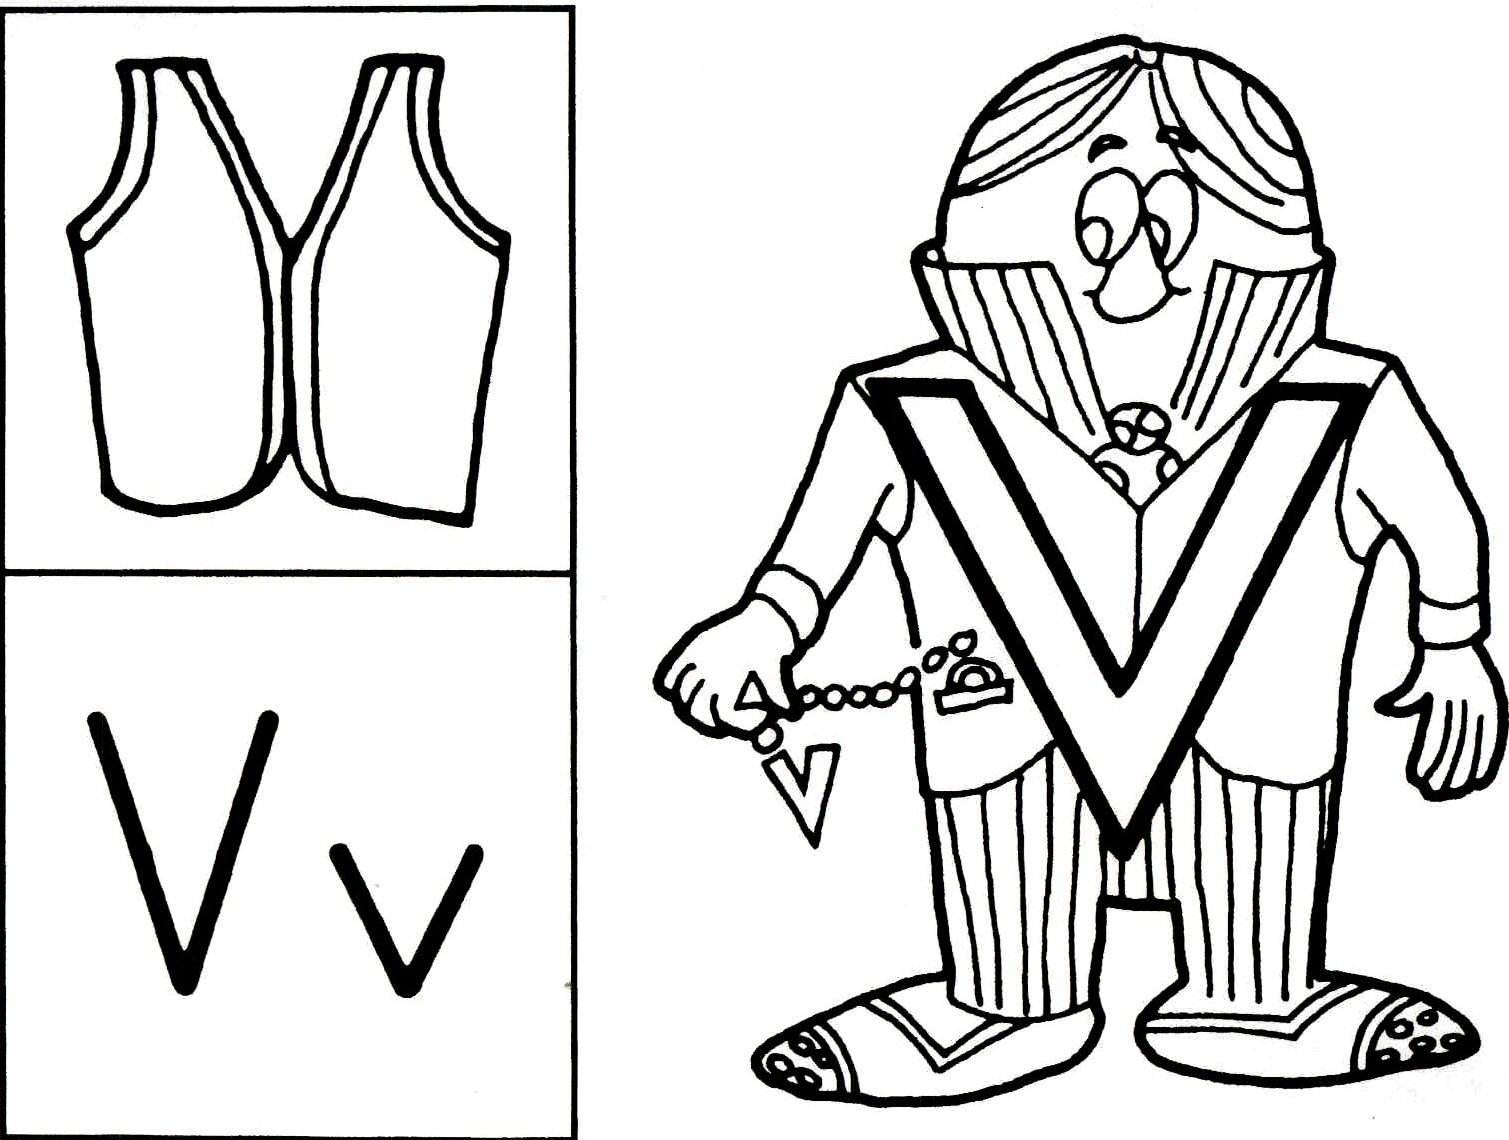 The Letter People Coloring Pages 28813,